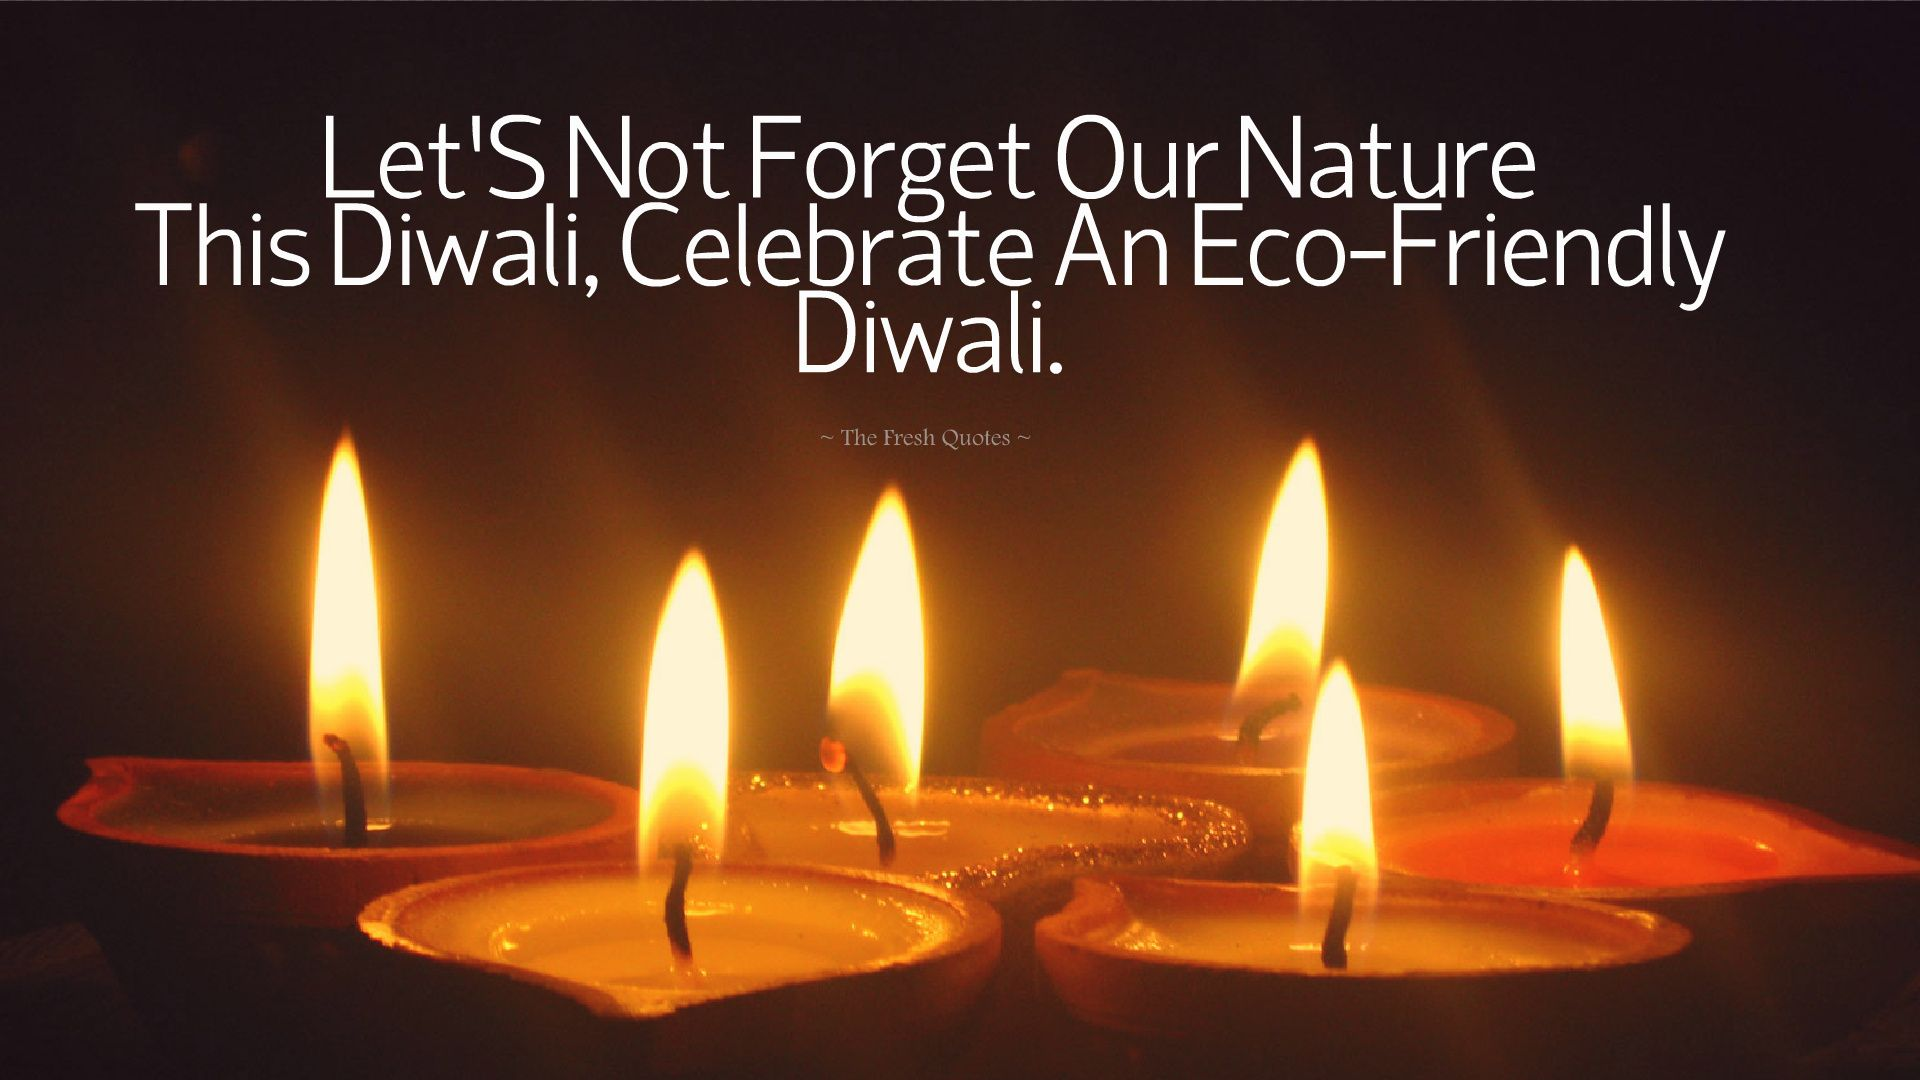 Pin By Sharuchatigmail Chati On Passions Pinterest Diwali